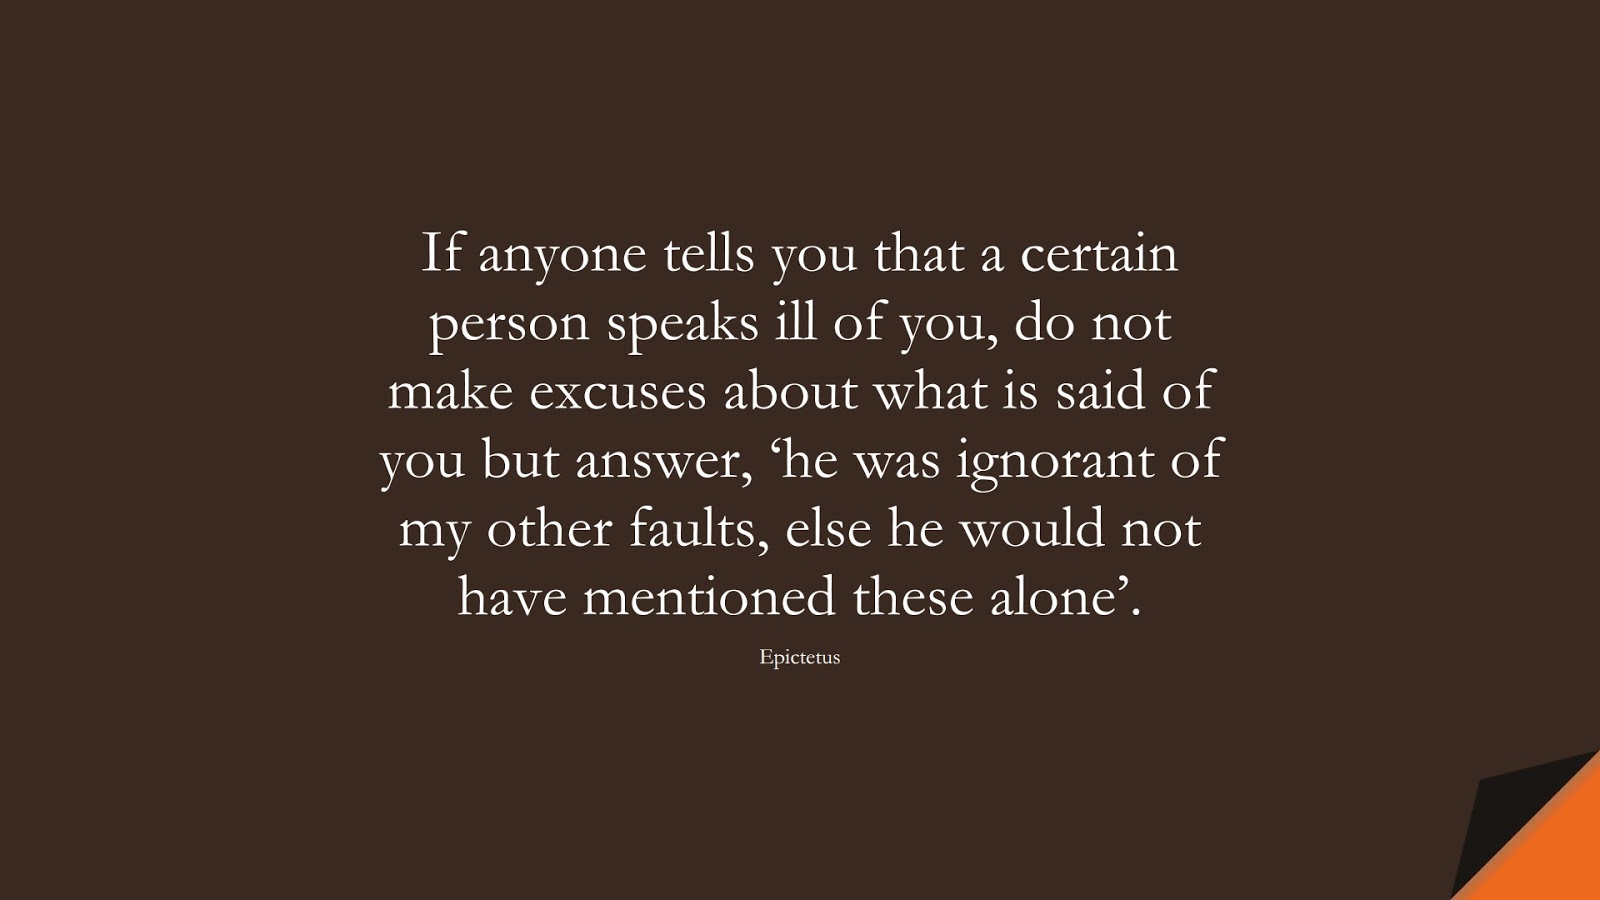 If anyone tells you that a certain person speaks ill of you, do not make excuses about what is said of you but answer, 'he was ignorant of my other faults, else he would not have mentioned these alone'. (Epictetus);  #StoicQuotes